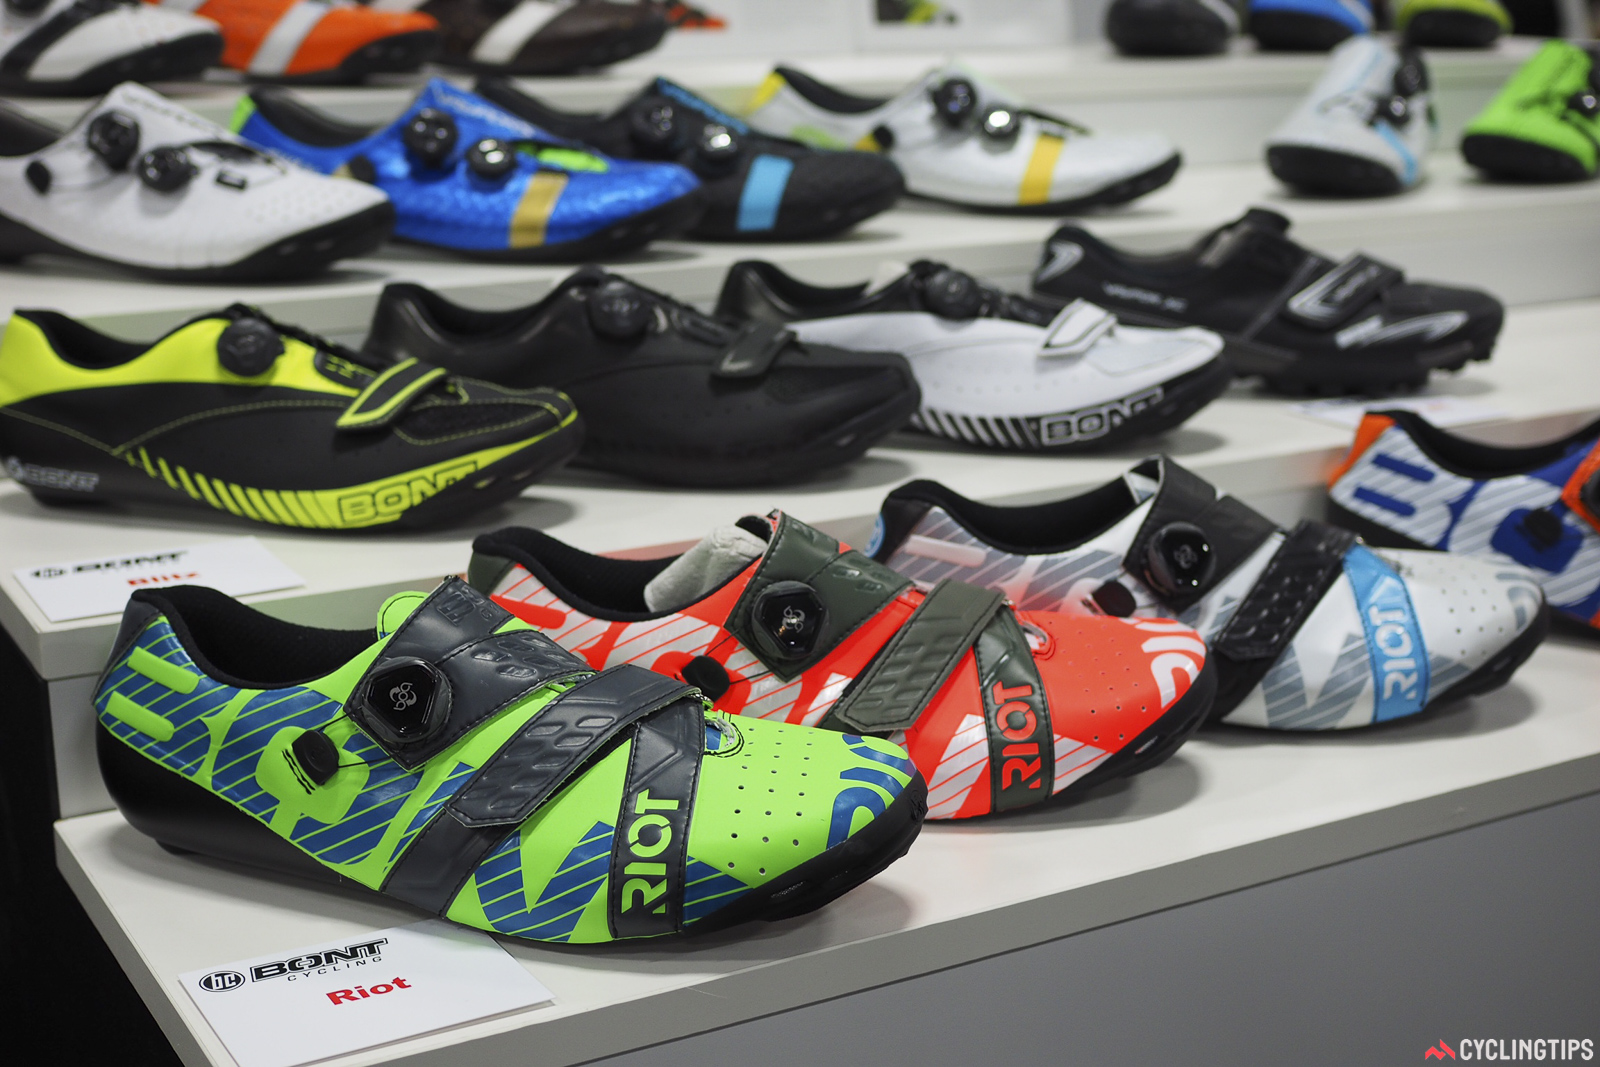 Bont's new Riot shoes are very reasonably priced at US$179 for the road version and US$199 for the MTB one, yet offer features similar to the company's top-end offerings. The sole uses carbon composite instead of true carbon fiber to save costs, but is still incredibly stiff, and the entire shoe is heat moldable for a customized fit. Shoes are slated to arrive in shops around November.